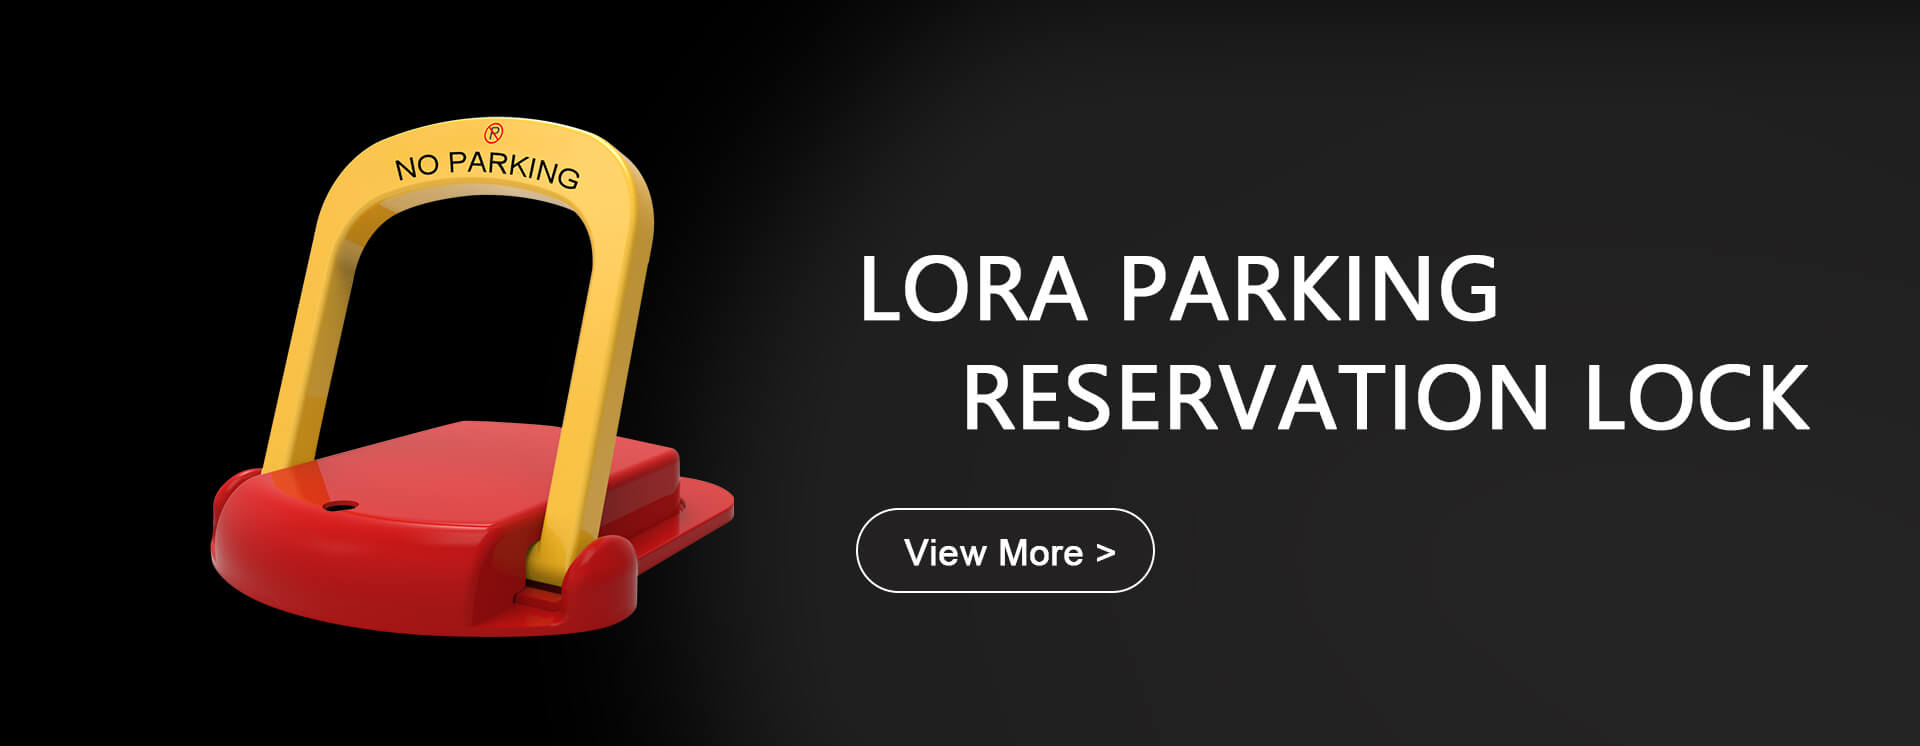 Lora Parking Reservation Lock